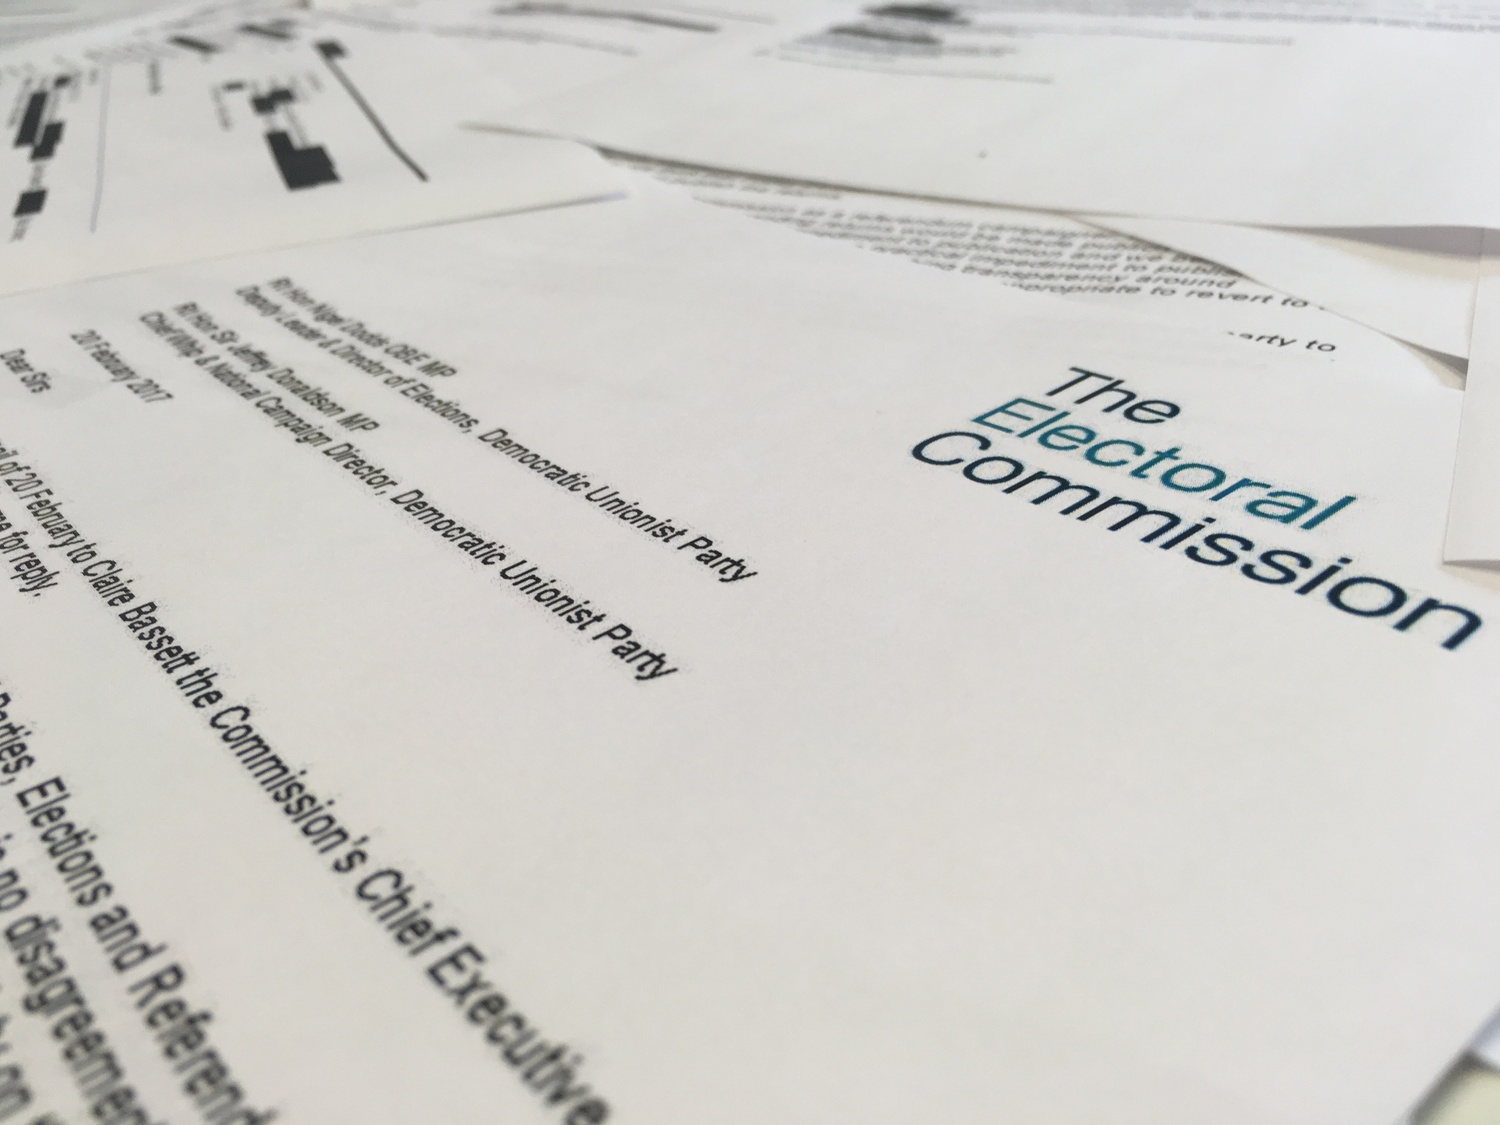 The Electoral Commission released correspondence between it and the DUP under FOI